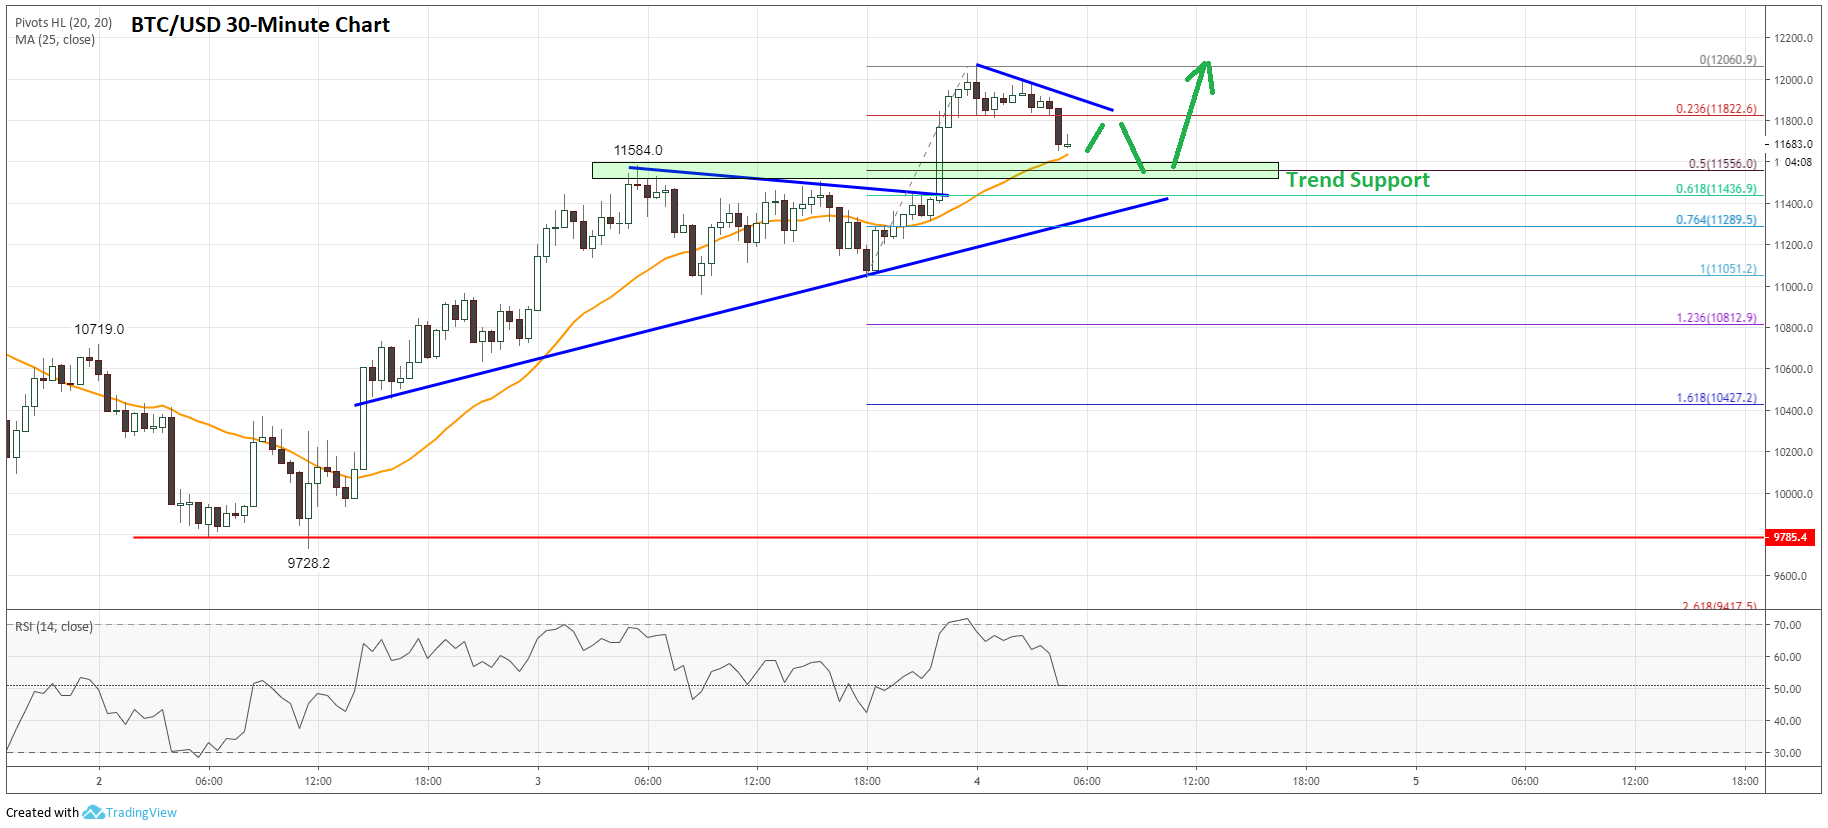 Bitcoin Price Analysis (BTC to USD)